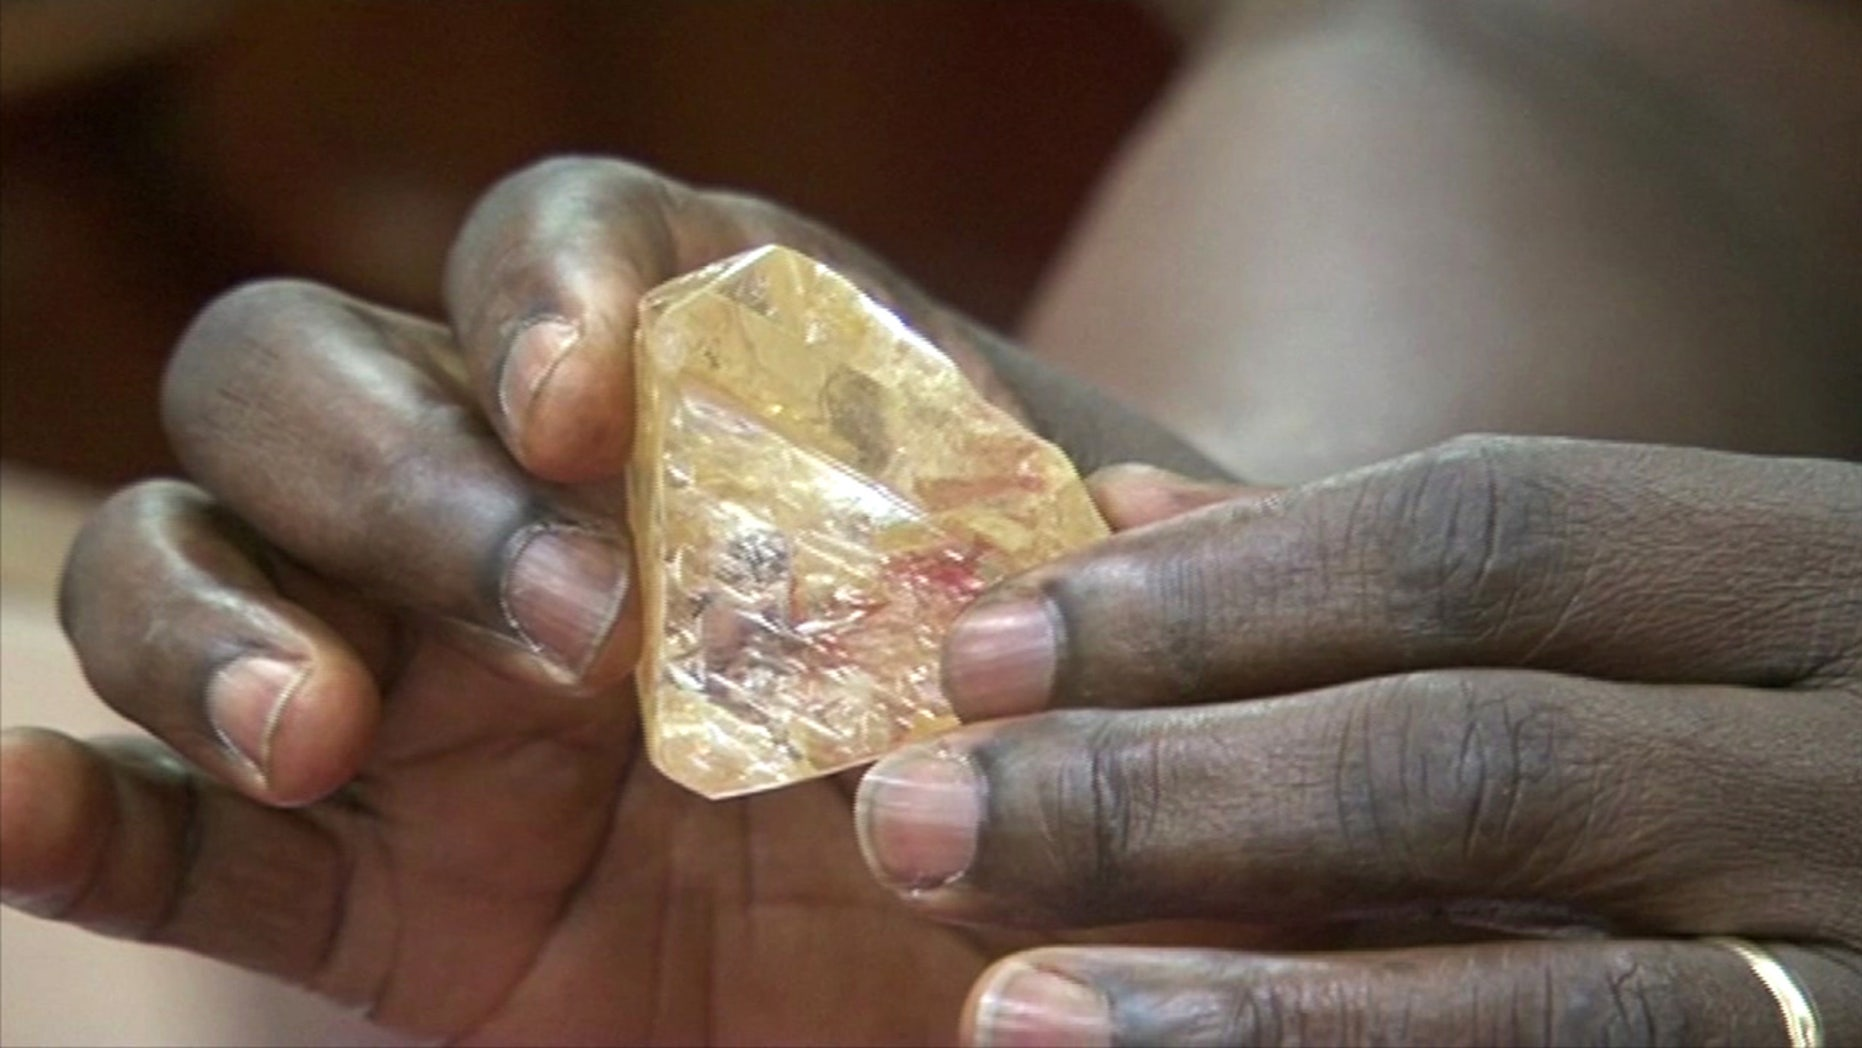 In this photo taken from video footage, Sierra Leone's President Ernest Bai Koroma hands a diamond during a meeting with delegates of Kono district, where the gem was found, at the presidential office in Freetown, Sierra Leone, Thursday, March 16, 2017